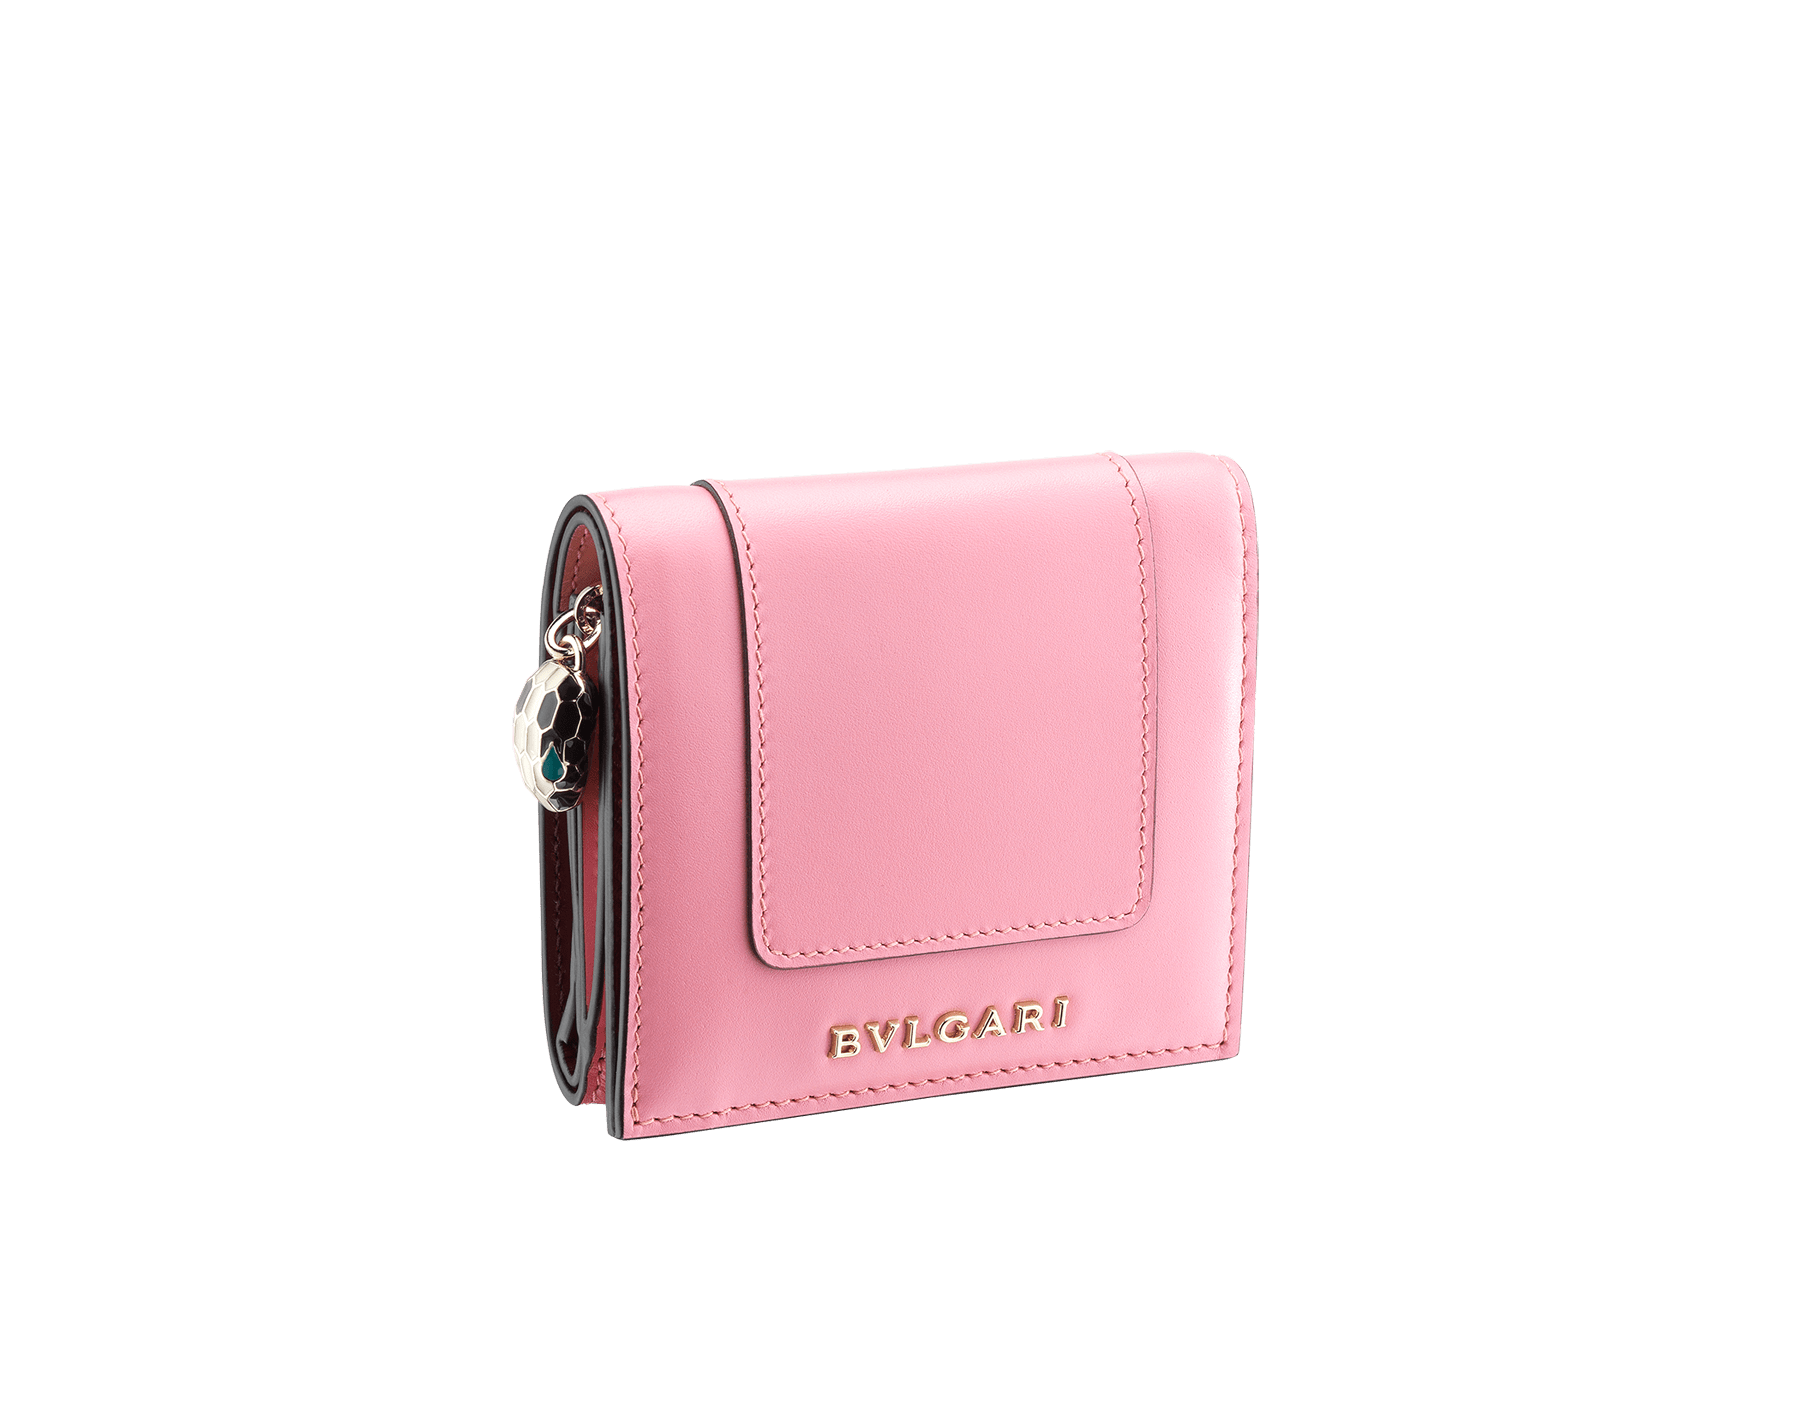 Serpenti Forever super compact wallet in flamingo quartz and roman garnet calf leather. Iconic snakehead zip puller in black and white enamel, with green malachite enamel eyes. 288035 image 1